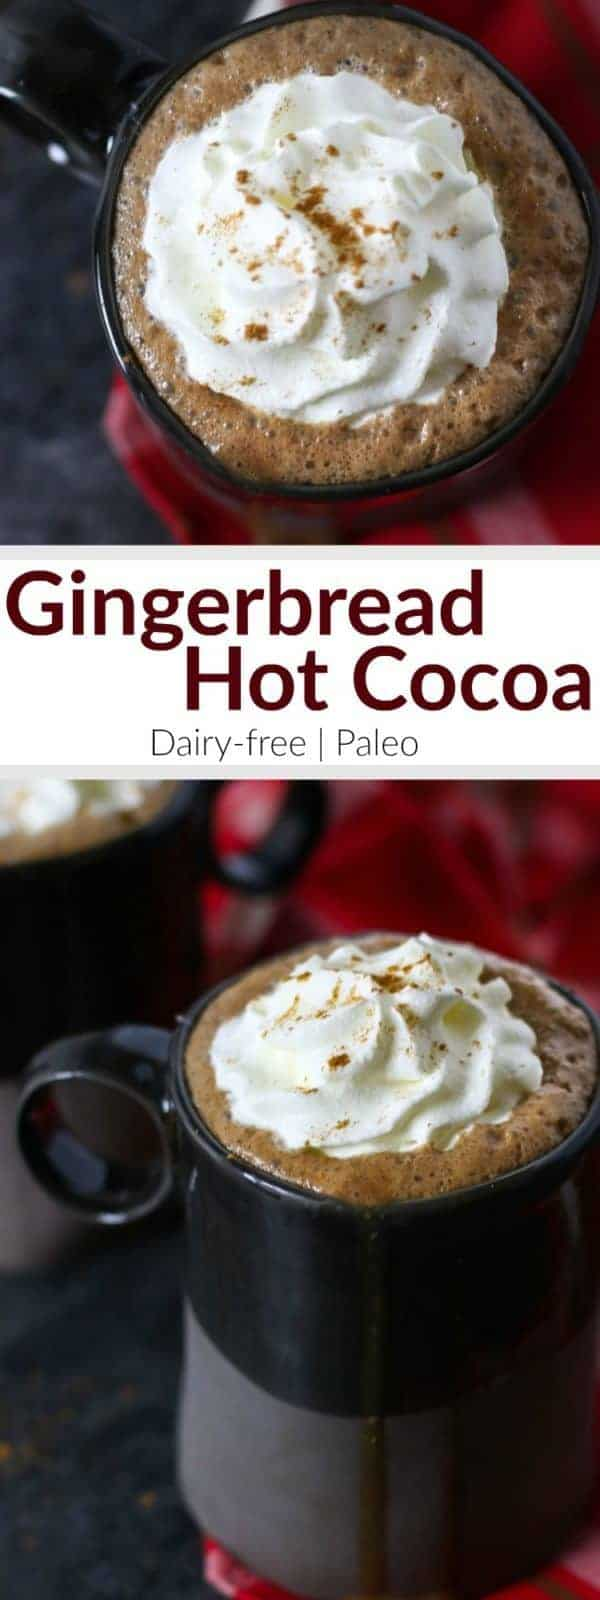 Dairy-free Gingerbread Hot Cocoa | In this Dairy-free Gingerbread Hot Cocoa that's sweetened with honey and molasses and spiced just right you get it all - cookies and cocoa - in one soul-warming mug. | dairy-free holiday drinks | dairy-free gingerbread recipes | dairy-free christmas recipes | dairy-free hot cocoa | paleo holiday drinks | paleo gingerbread recipes | paleo christmas recipes | paleo holiday drinks || The Real Food Dietitians #paleodrinks #paleochristmas #dairyfreeholiday #dairyfreehotcocoa